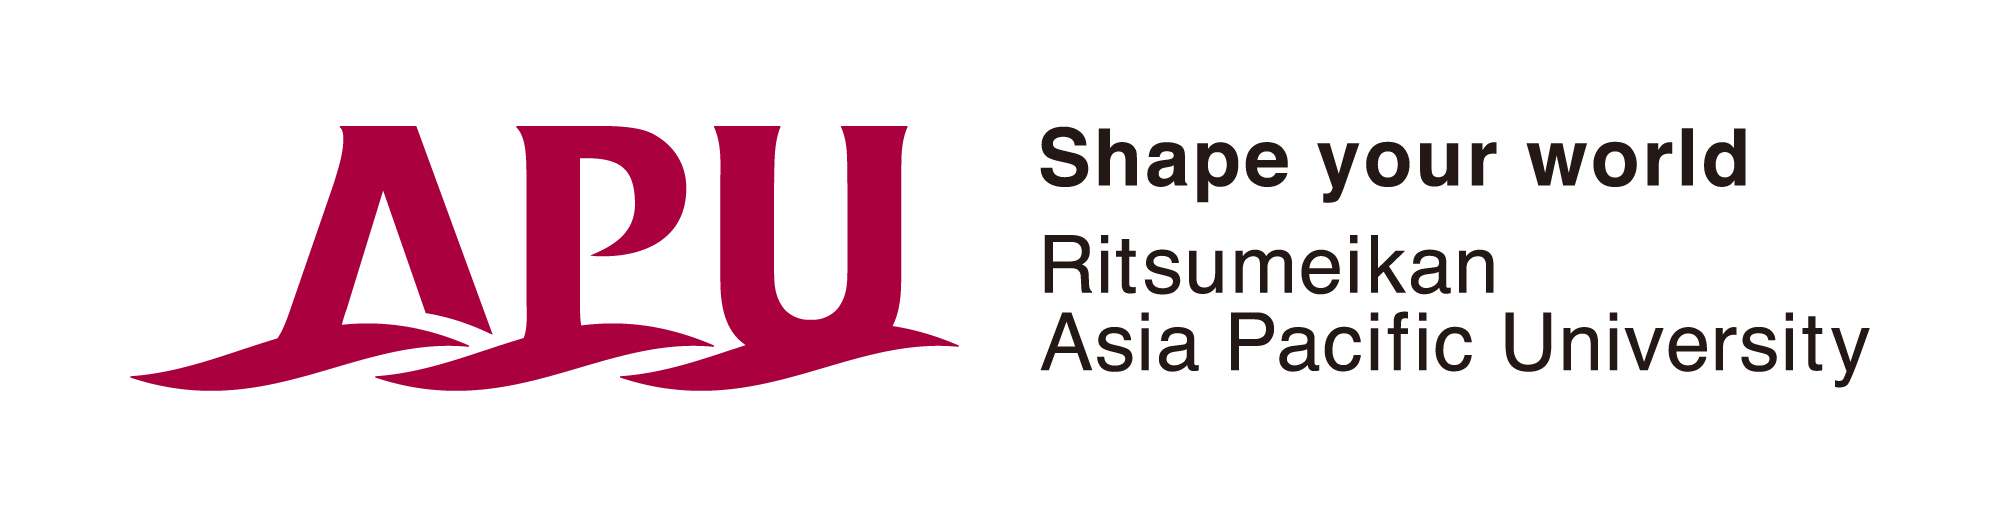 APU(Ritsumeikan Asia Pacific University) Shape your world